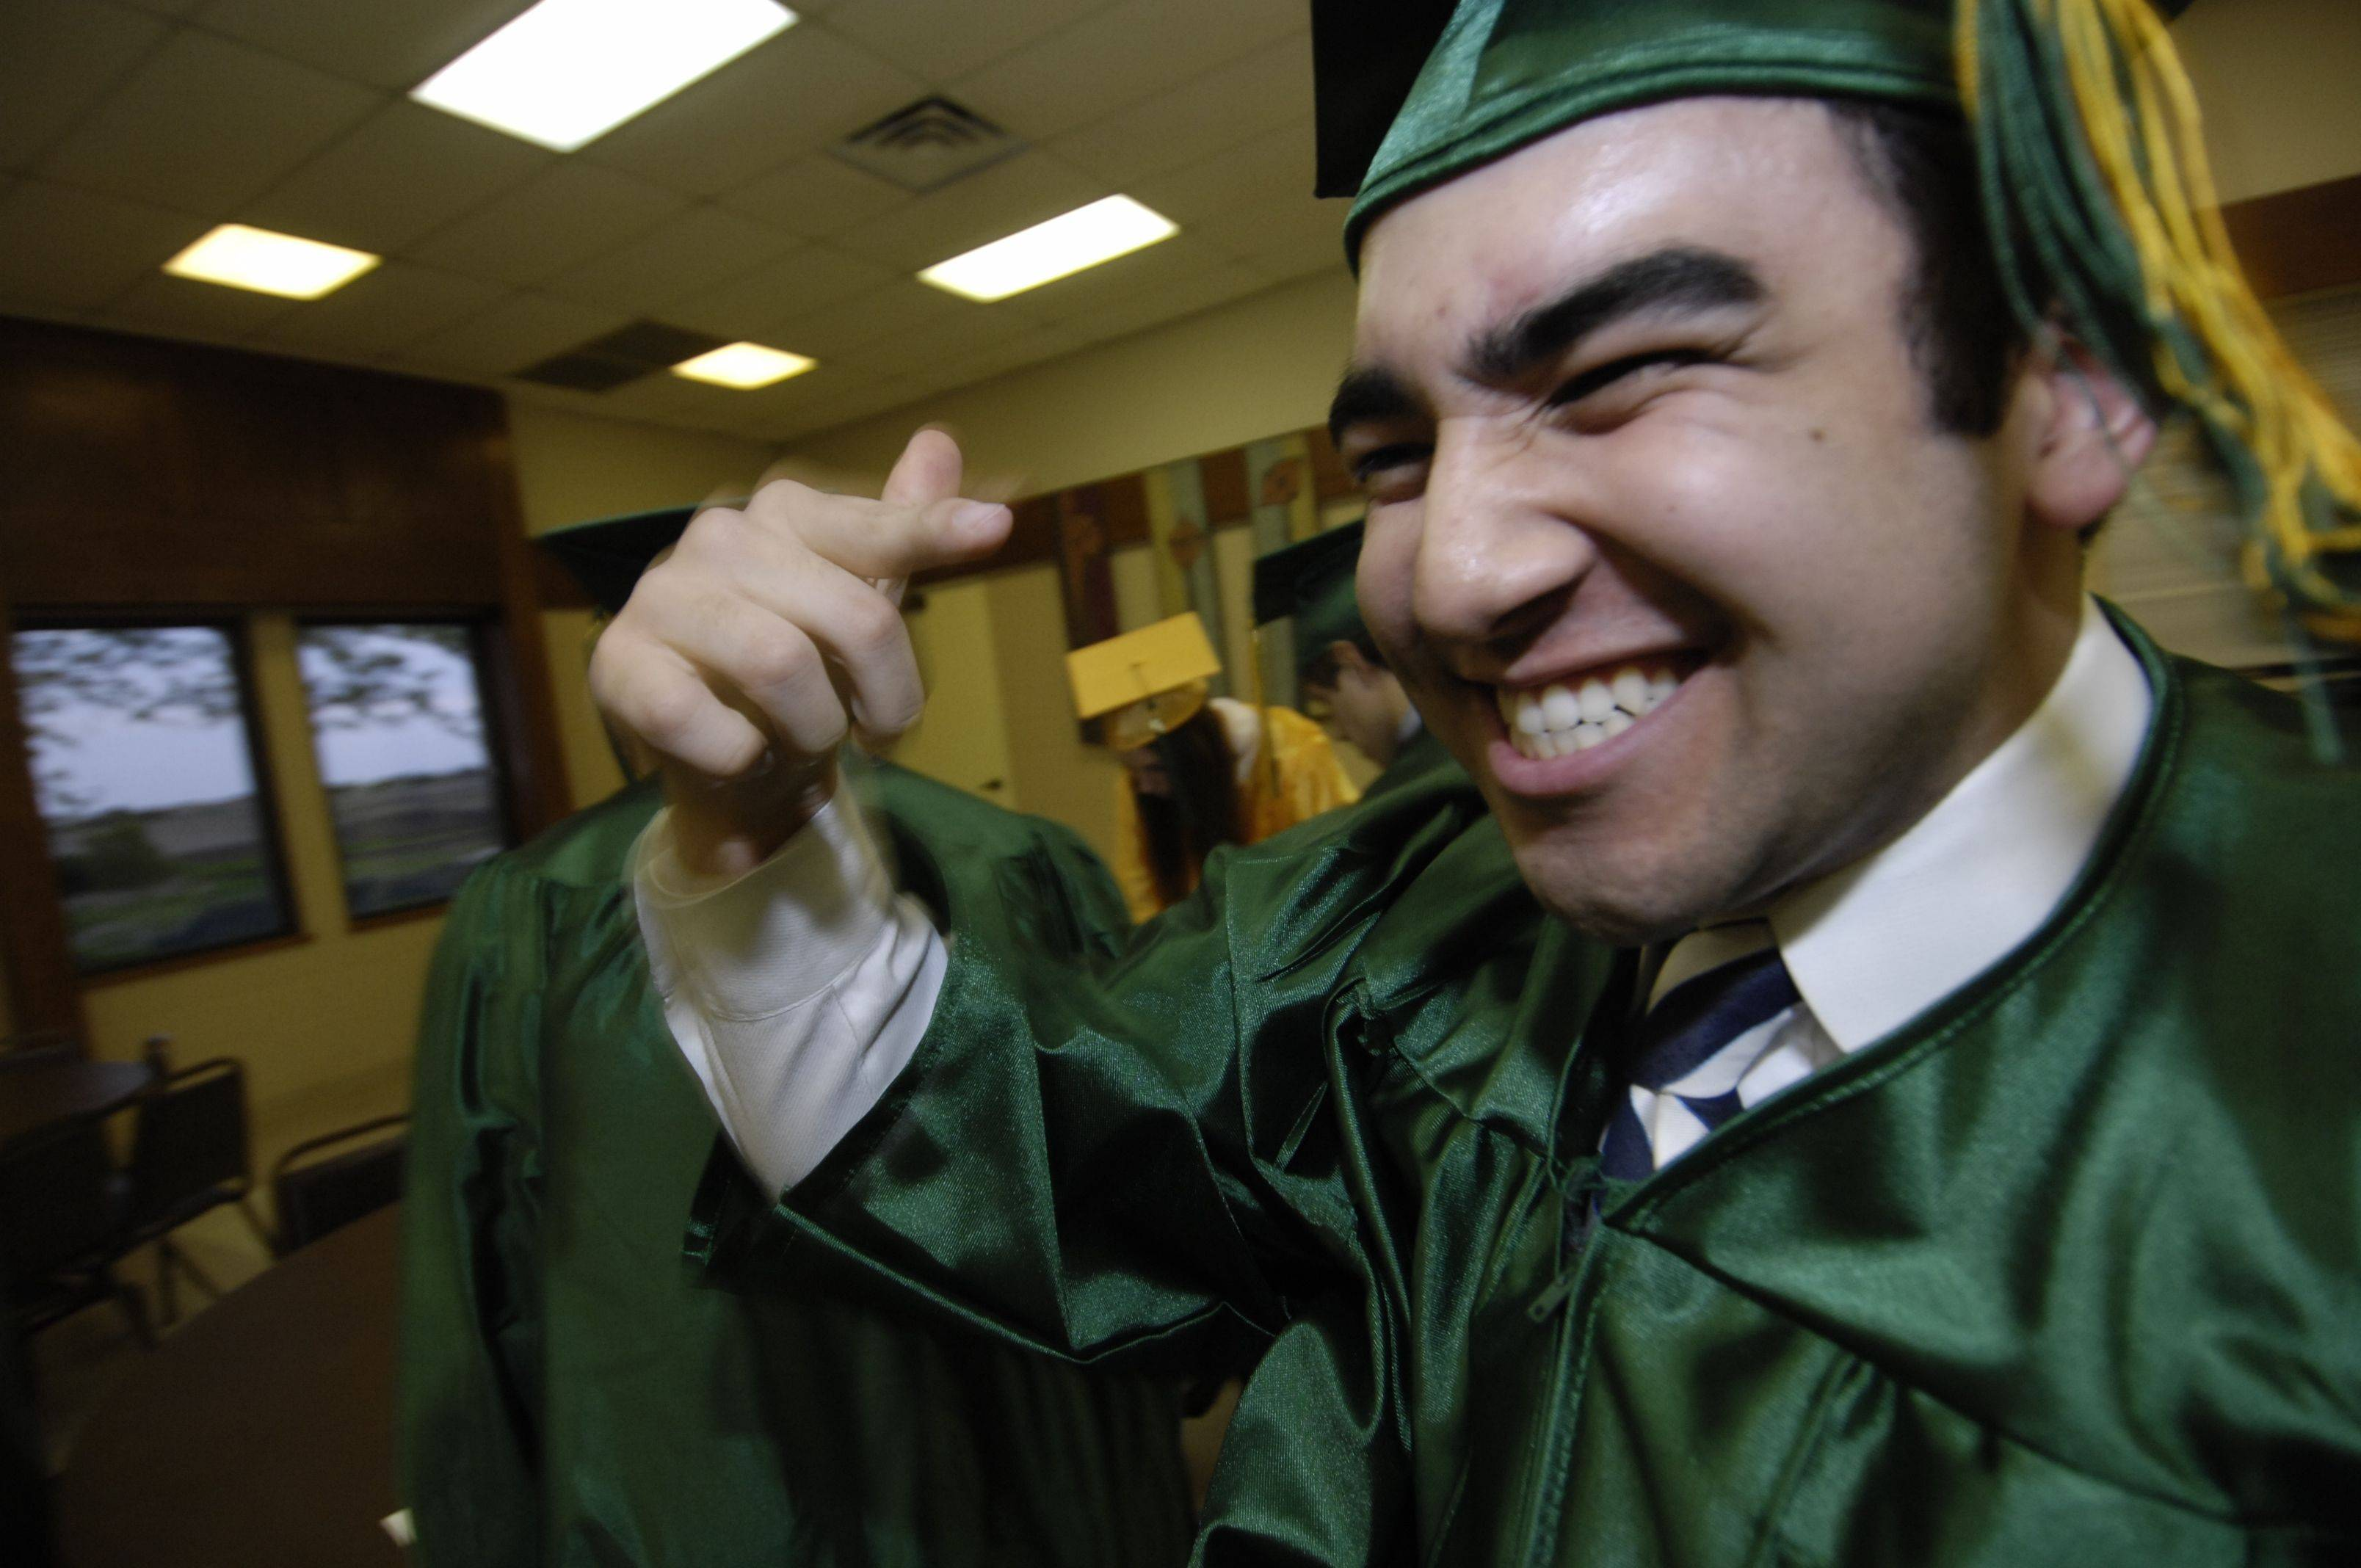 Images from the St. Edward Catholic High School graduation ceremony Tuesday, May 24, 2011.